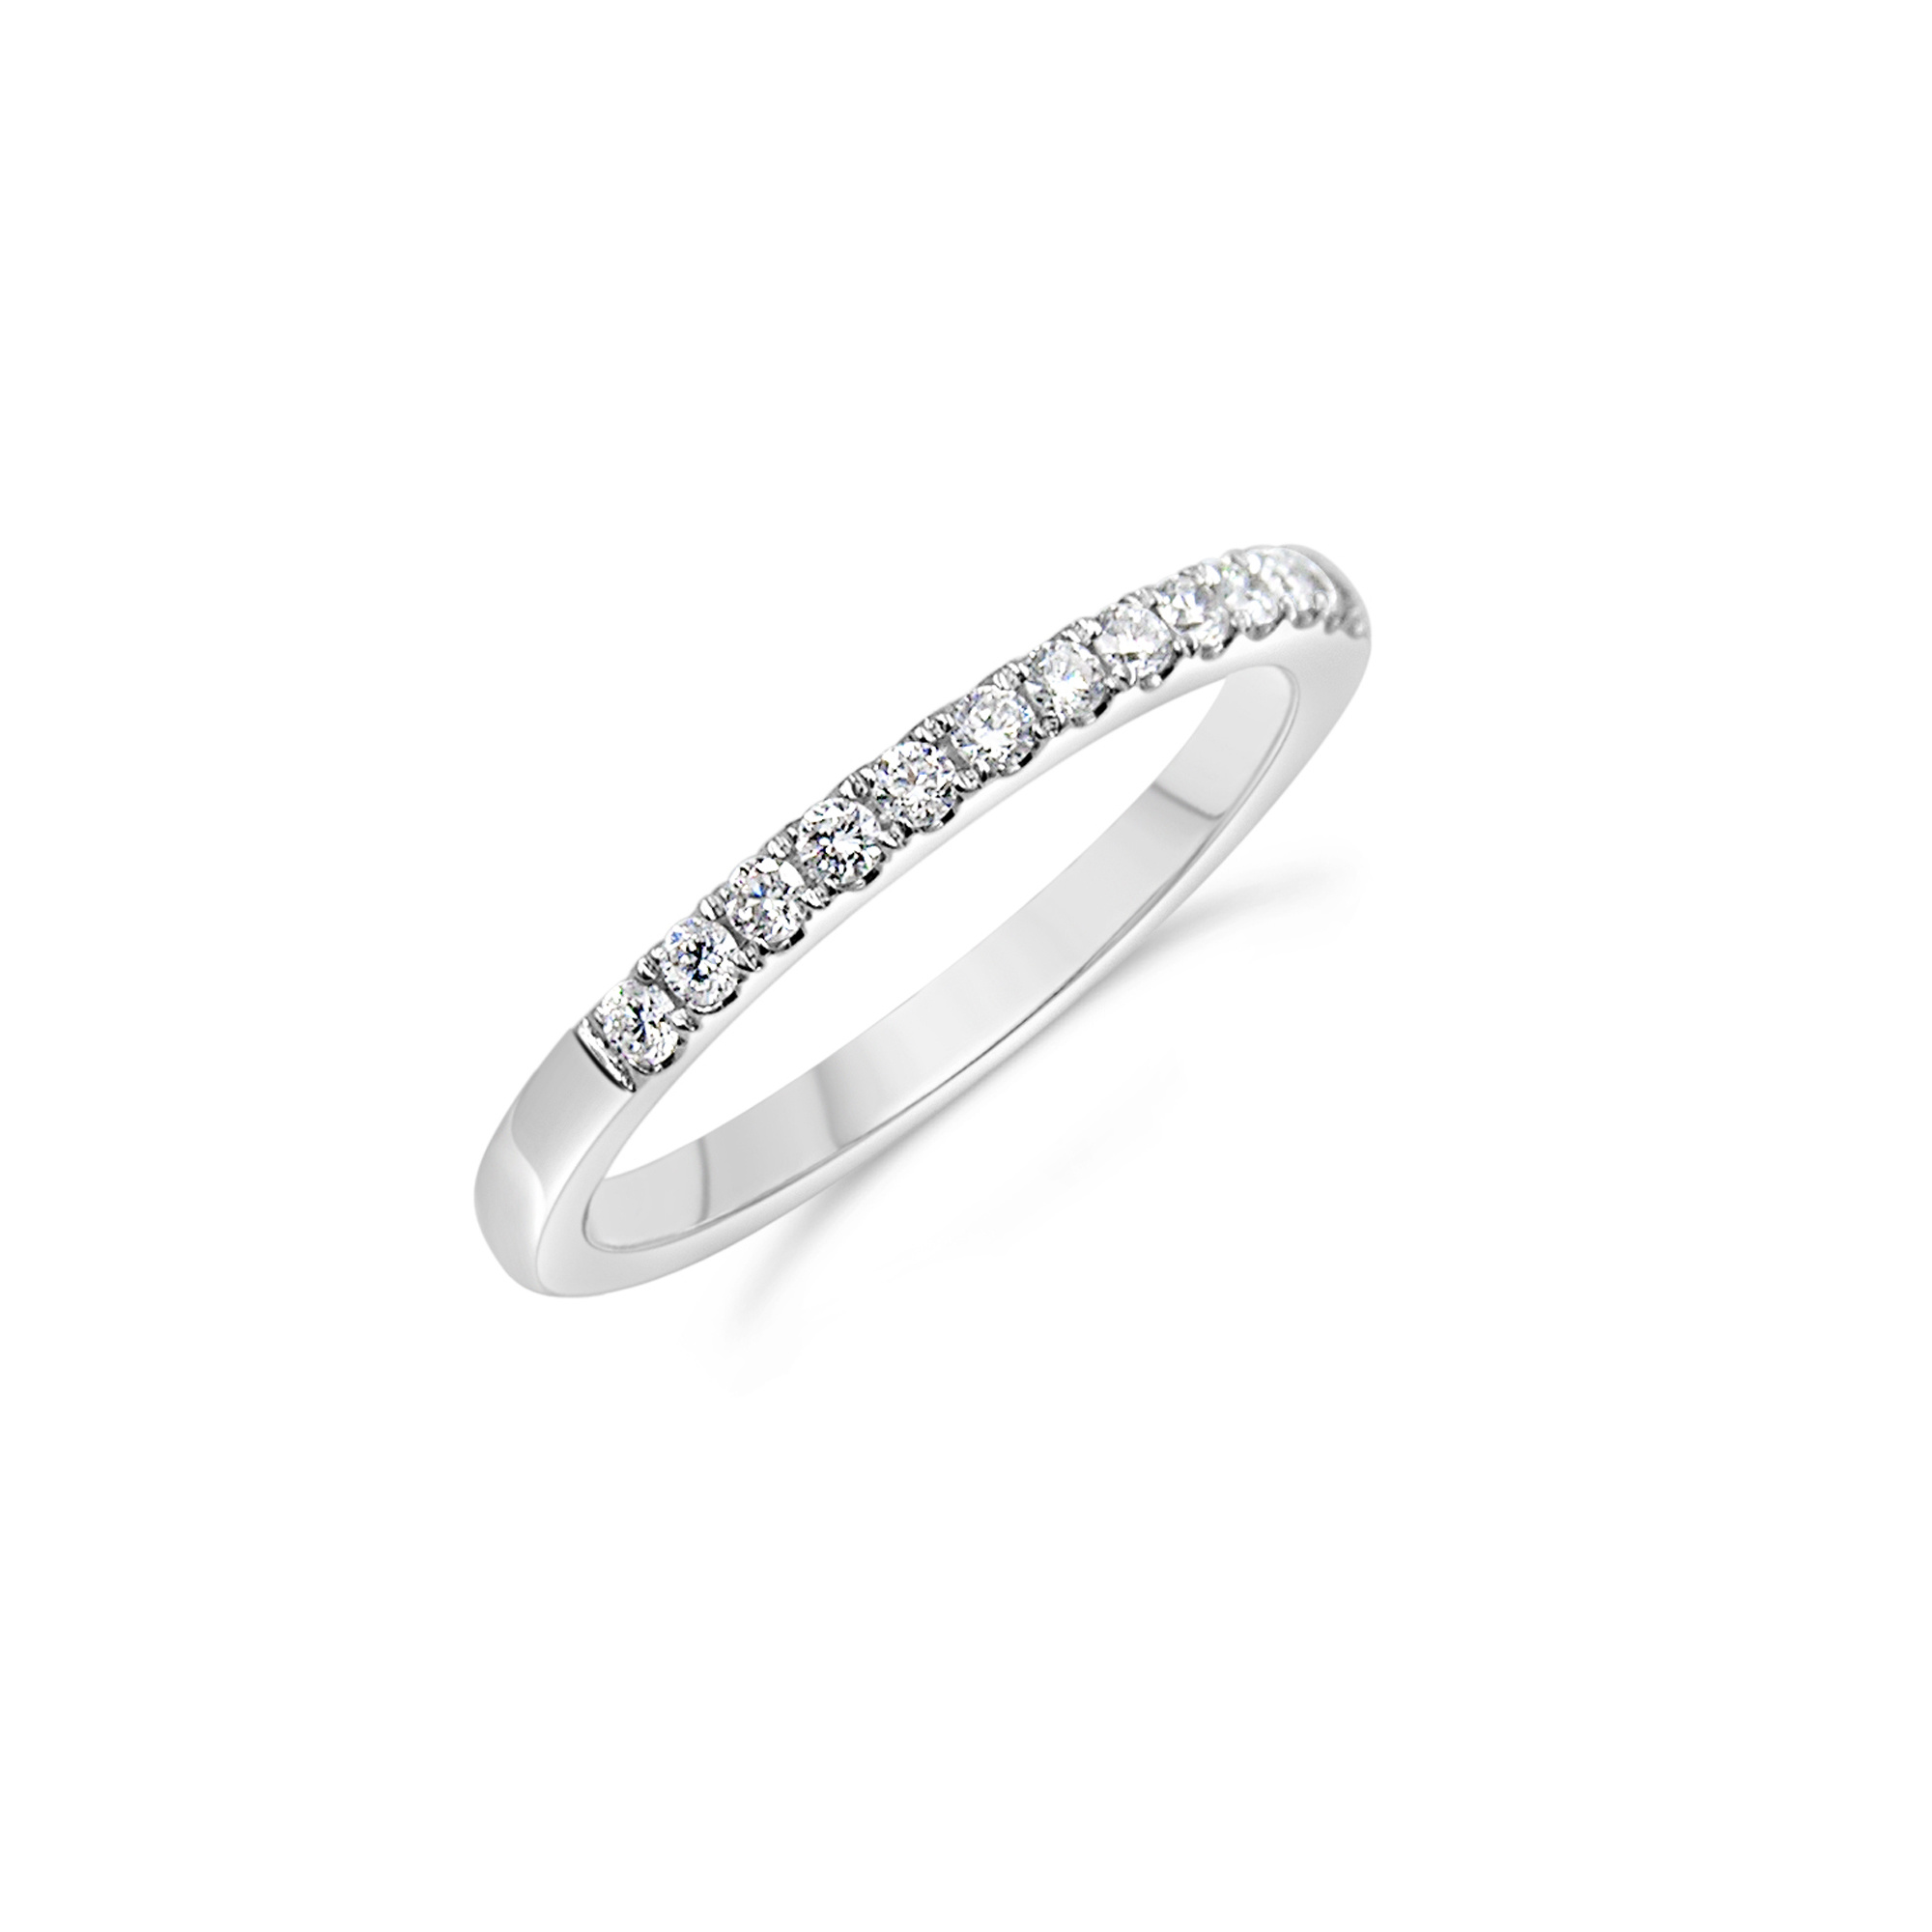 18k wit goud ring met 0.34 ct diamanten